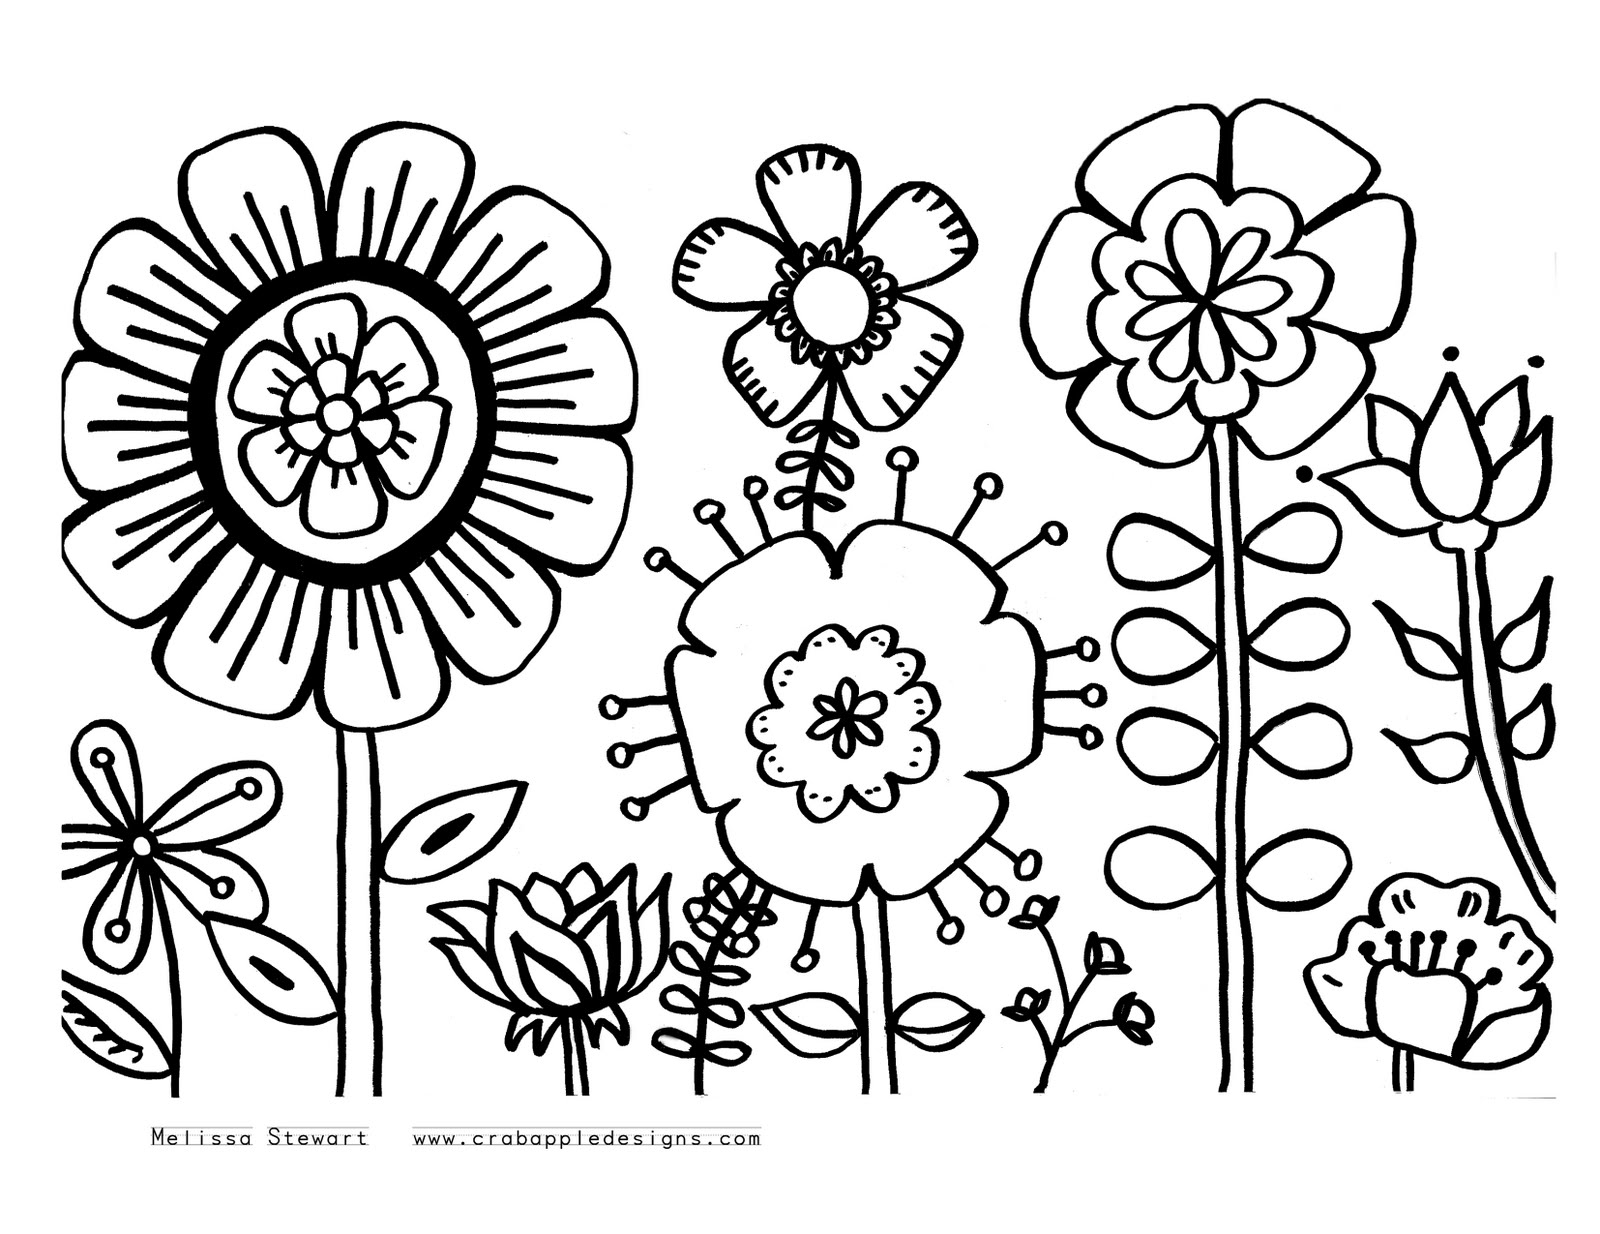 Spring coloring pages free printable - April Showers Coloring Pages Finest April Month For Spring